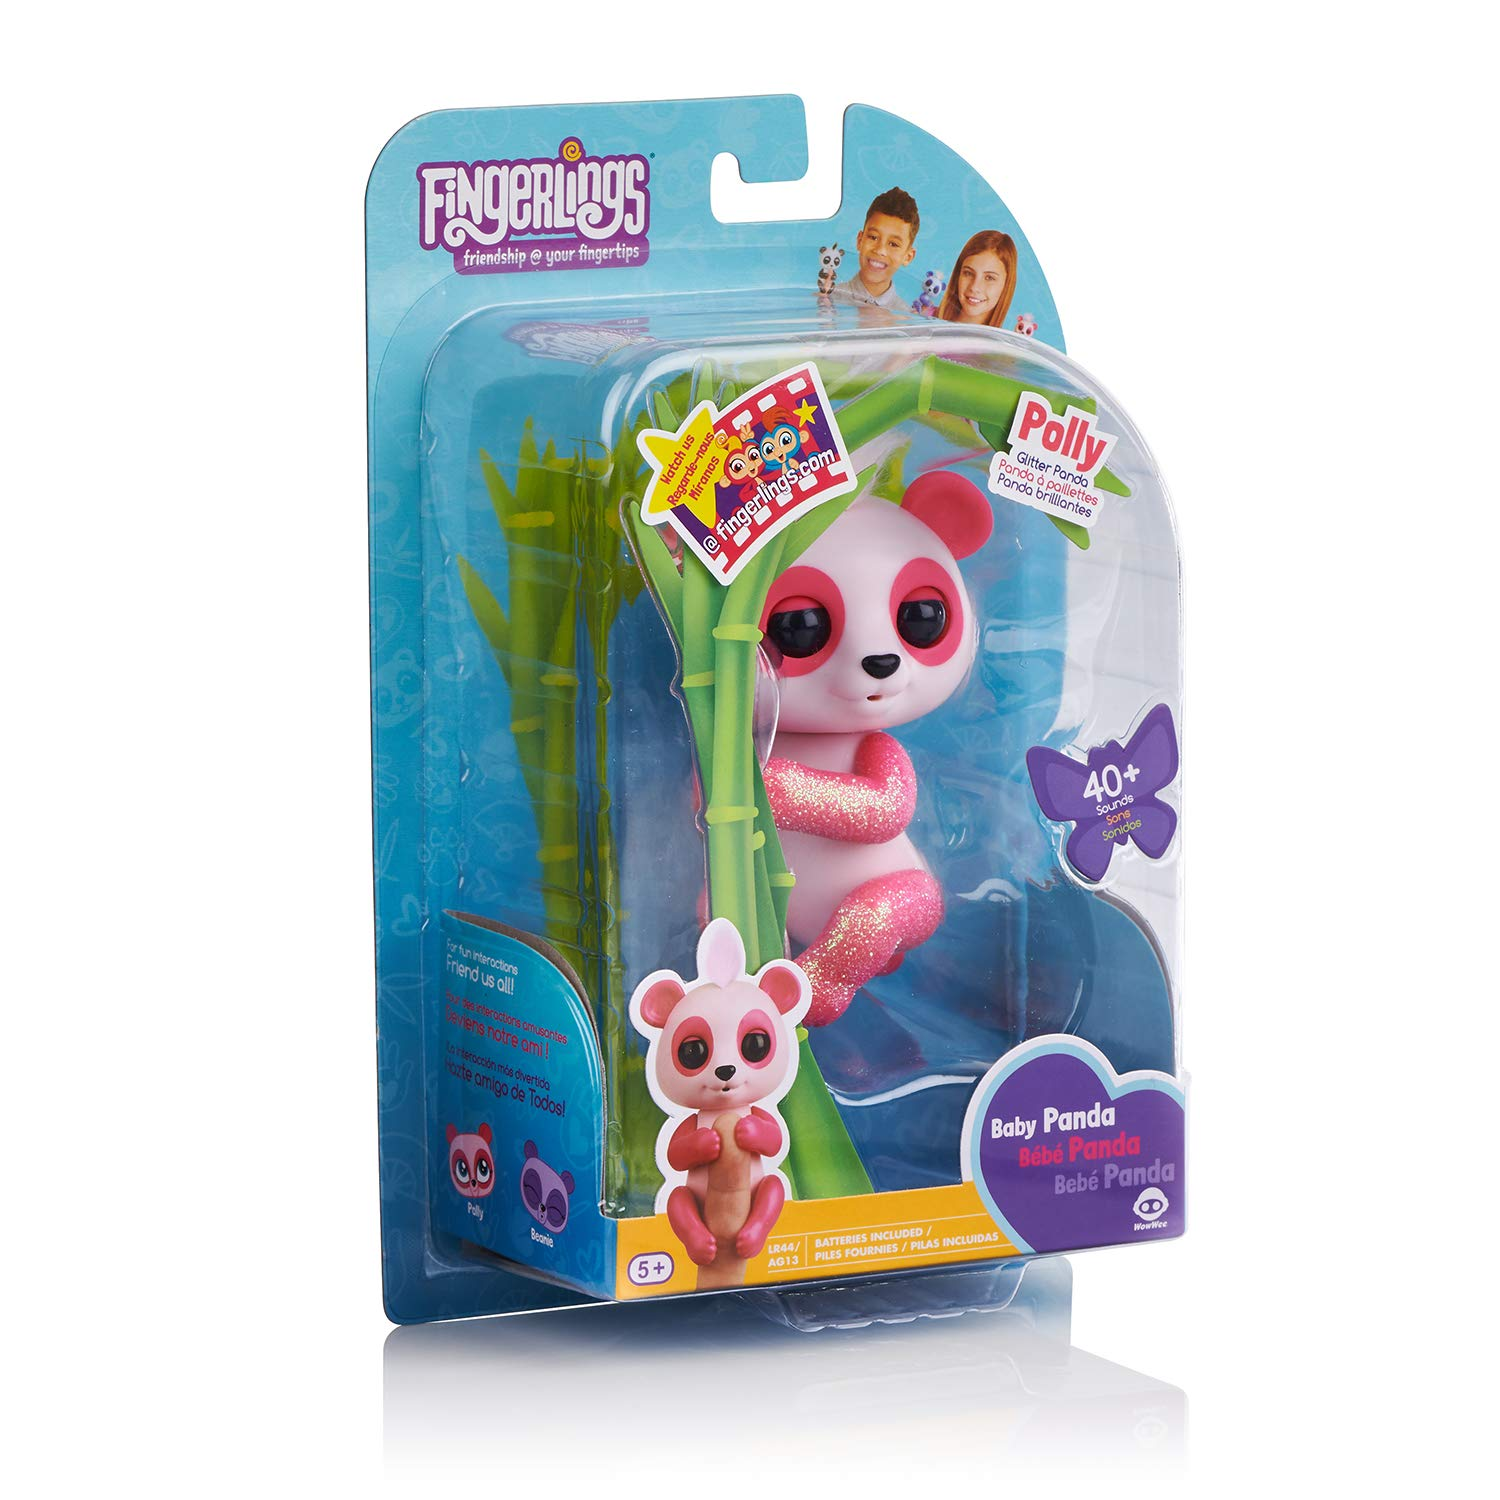 WowWee Fingerlings Glitter Panda - Polly - Interactive Collectible Baby Pet, Pink by WowWee (Image #8)